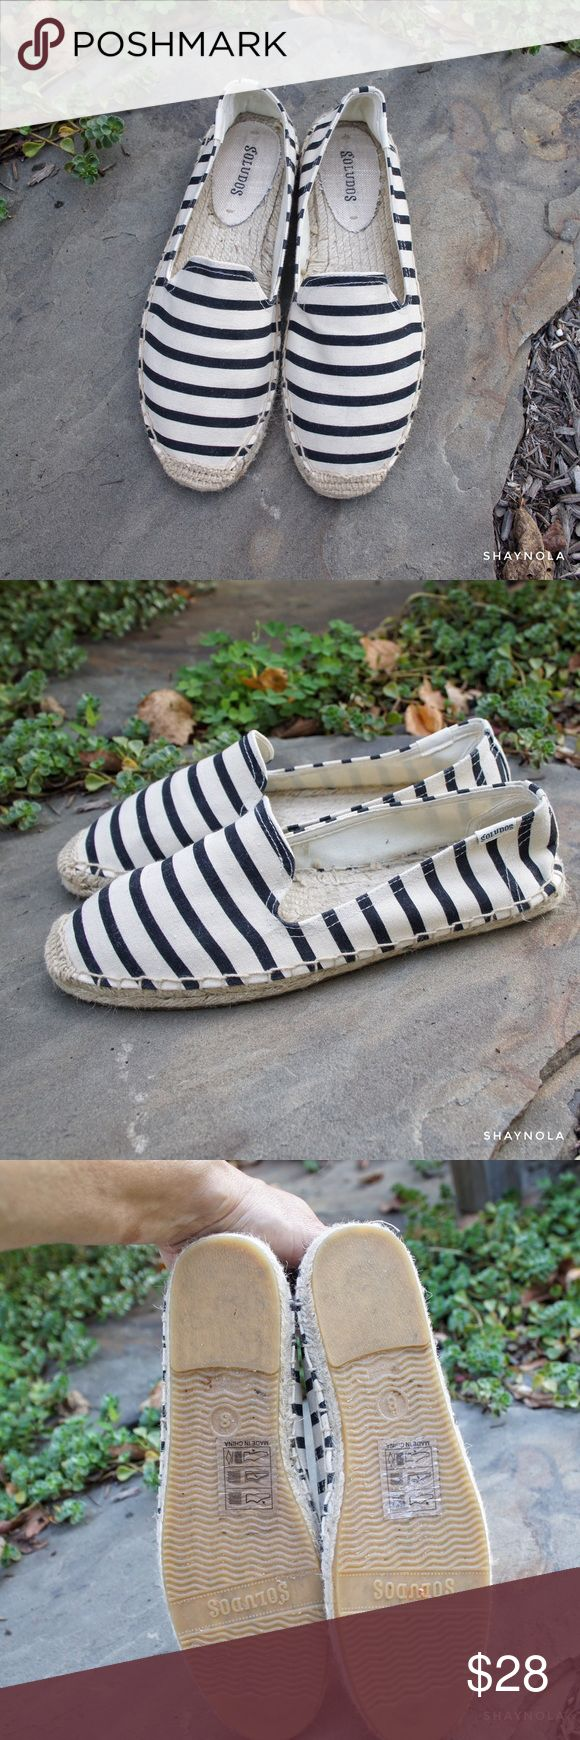 Soludos Original Dali B/W Striped Slipper Original Dali style espadrilles by Soludos in black and cream stripes. Excellent, very lightly worn condition. Size 8. Note: I am between a 7.5 and 8 and these fit me. Soludos Shoes Espadrilles